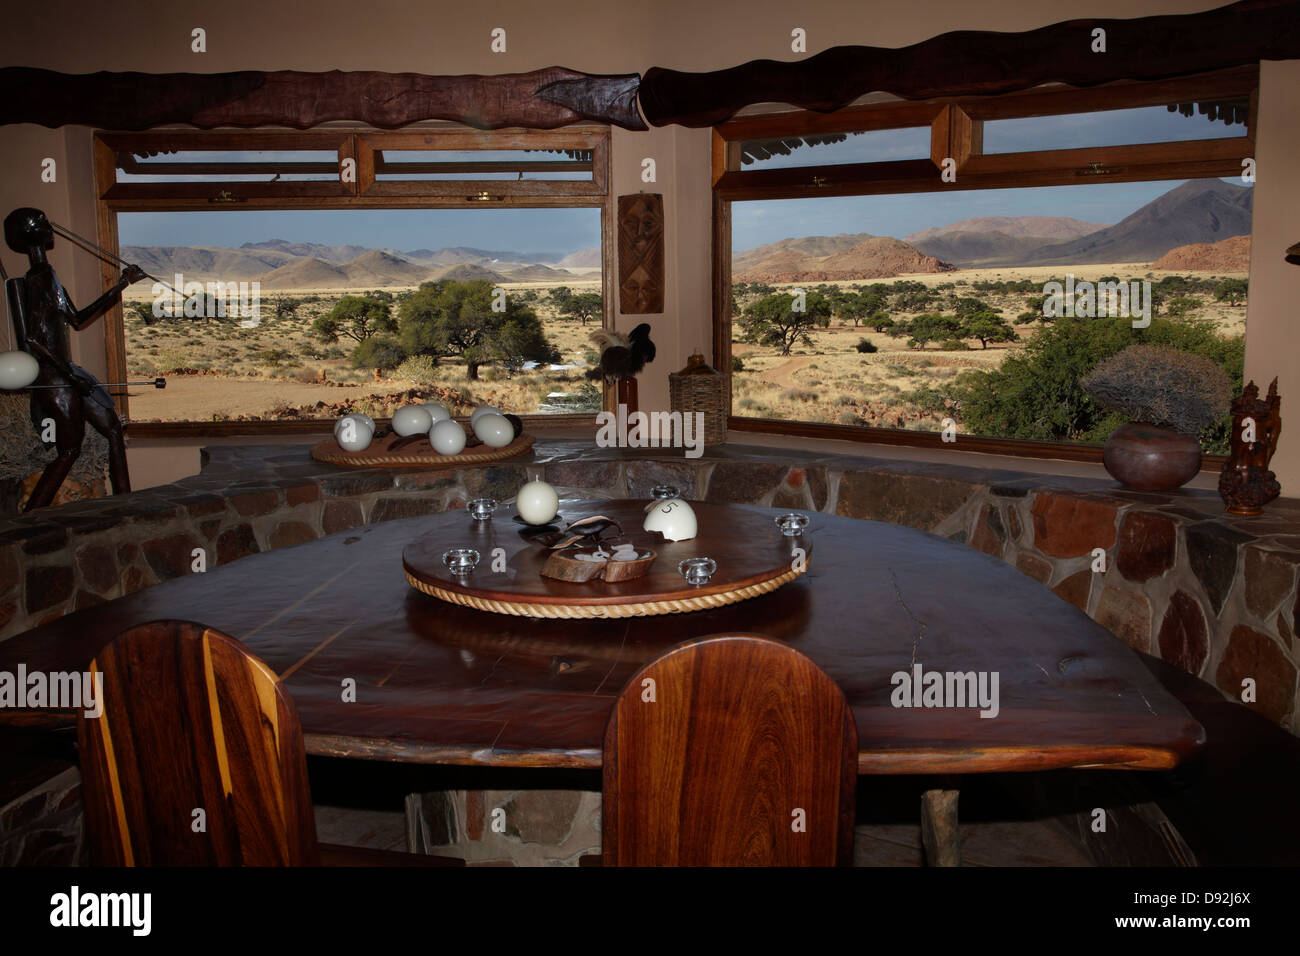 Restaurant, Fest Inn Fels Farm Lodge, Ranch Koiimasis, Tiras Mountains, Southern Namibia, Africa Stock Photo